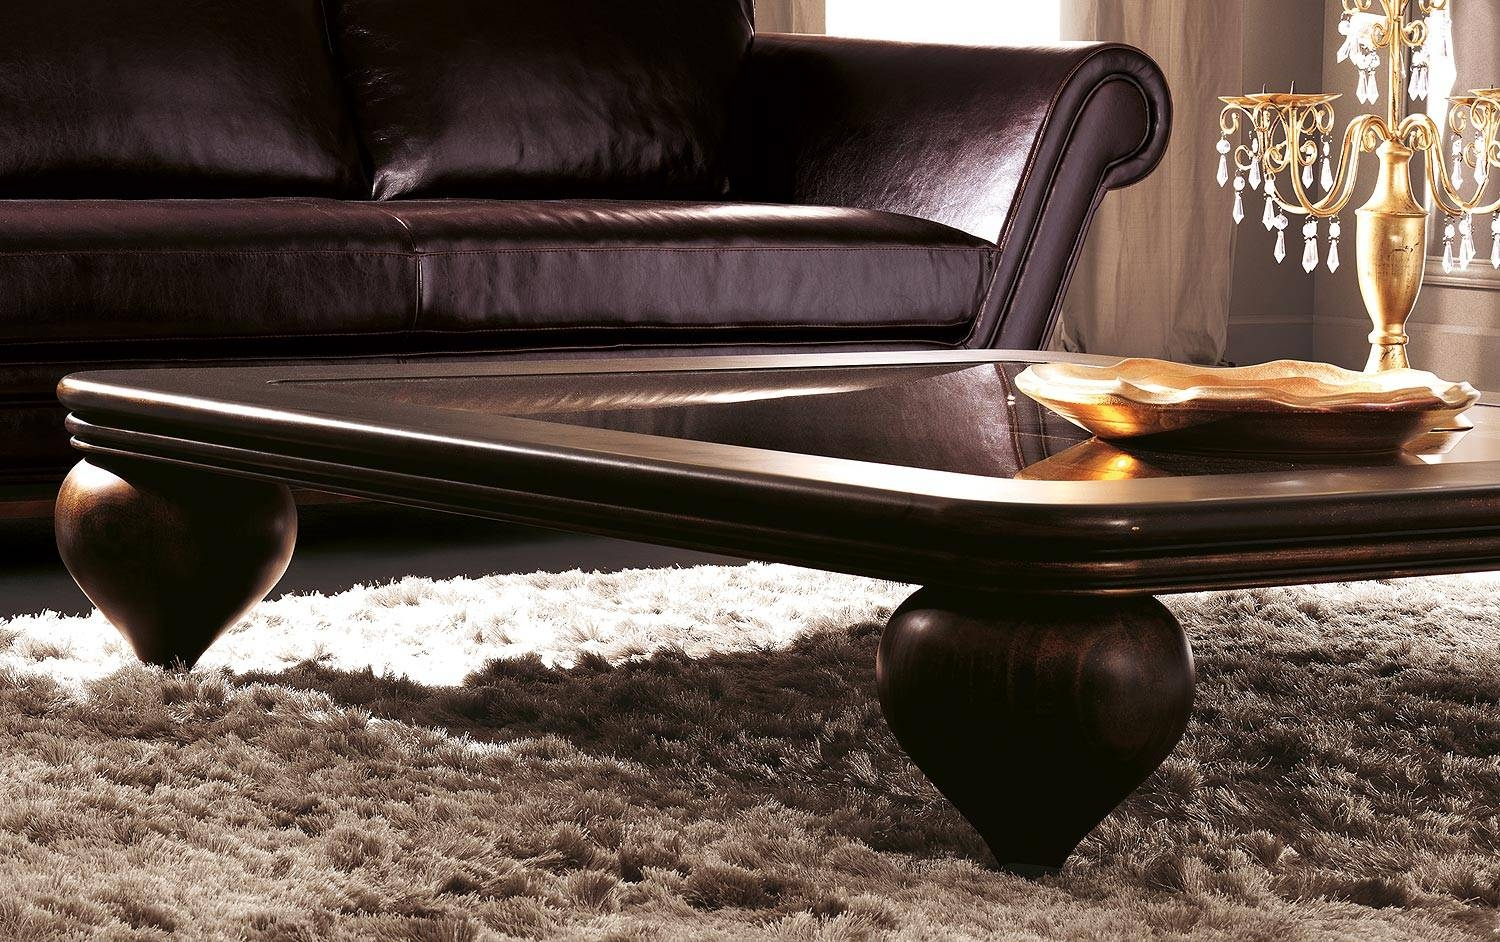 Orione Coffee Tables Cortezari Italian Luxury Furniture High End regarding Luxury  Coffee Tables (Image 15